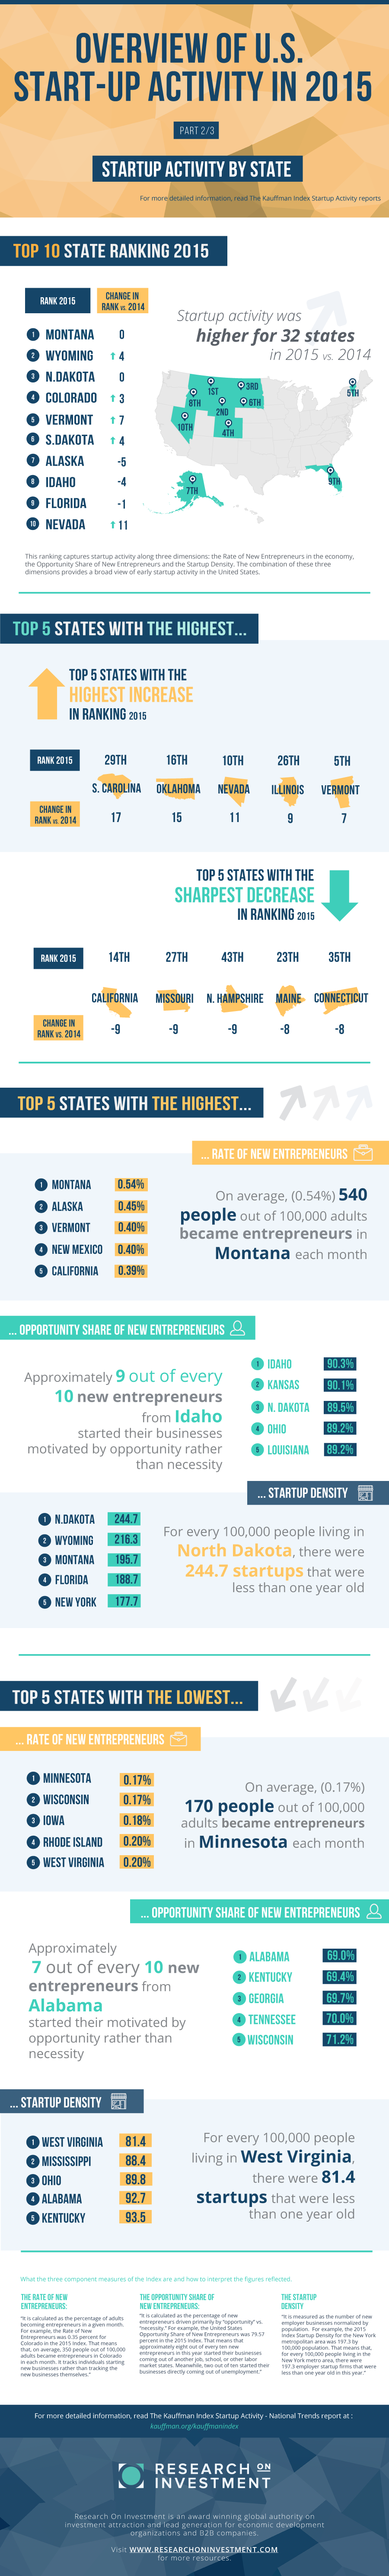 2015 U.S. ENTREPRENEURSHIP LEVELS BY STATE Infographic